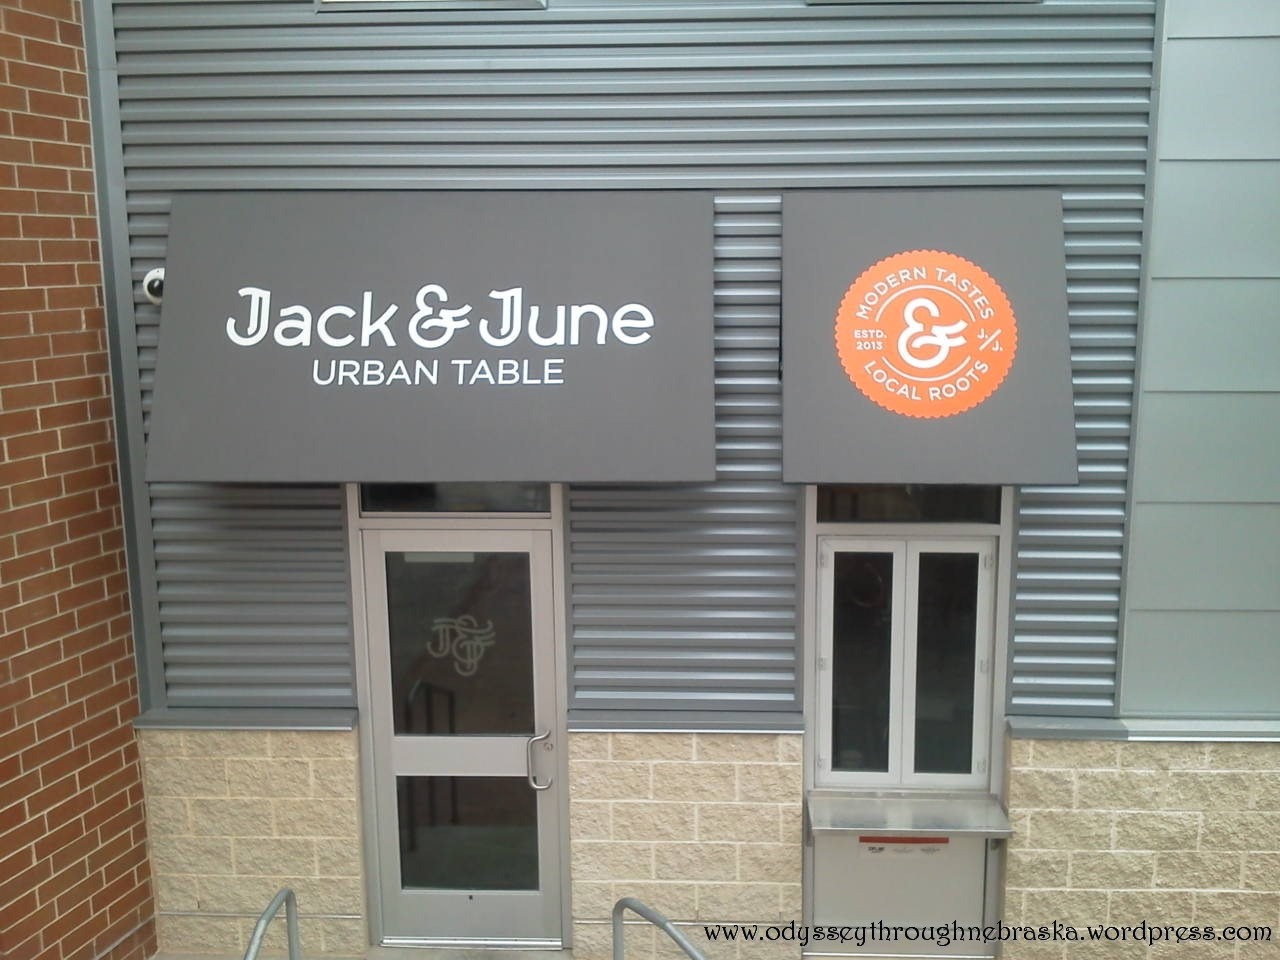 Lincoln S New Railyard Dining At Jack Amp June The Urban